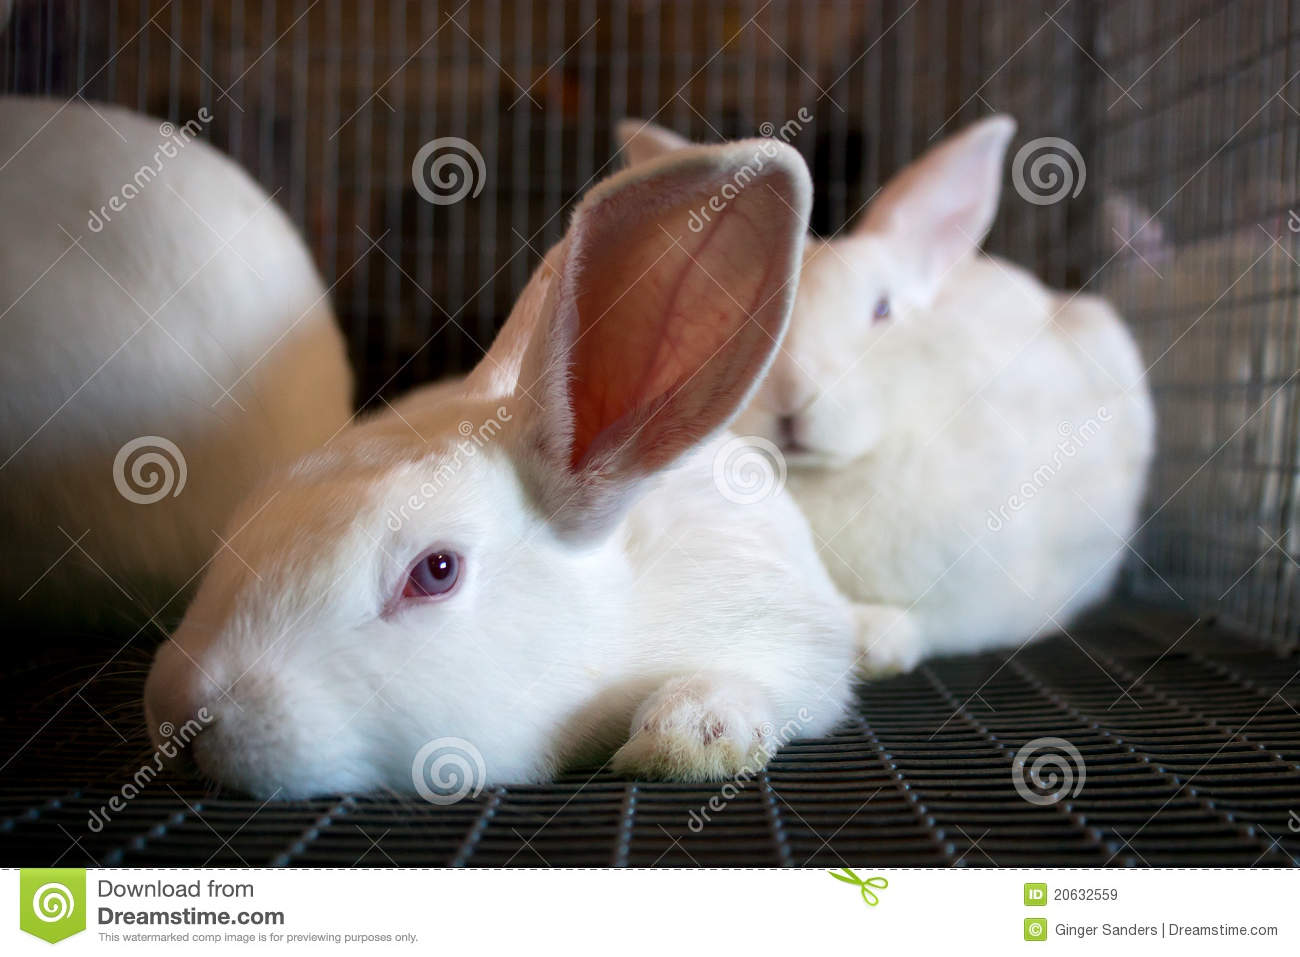 White Rabbits in A Wire Cage